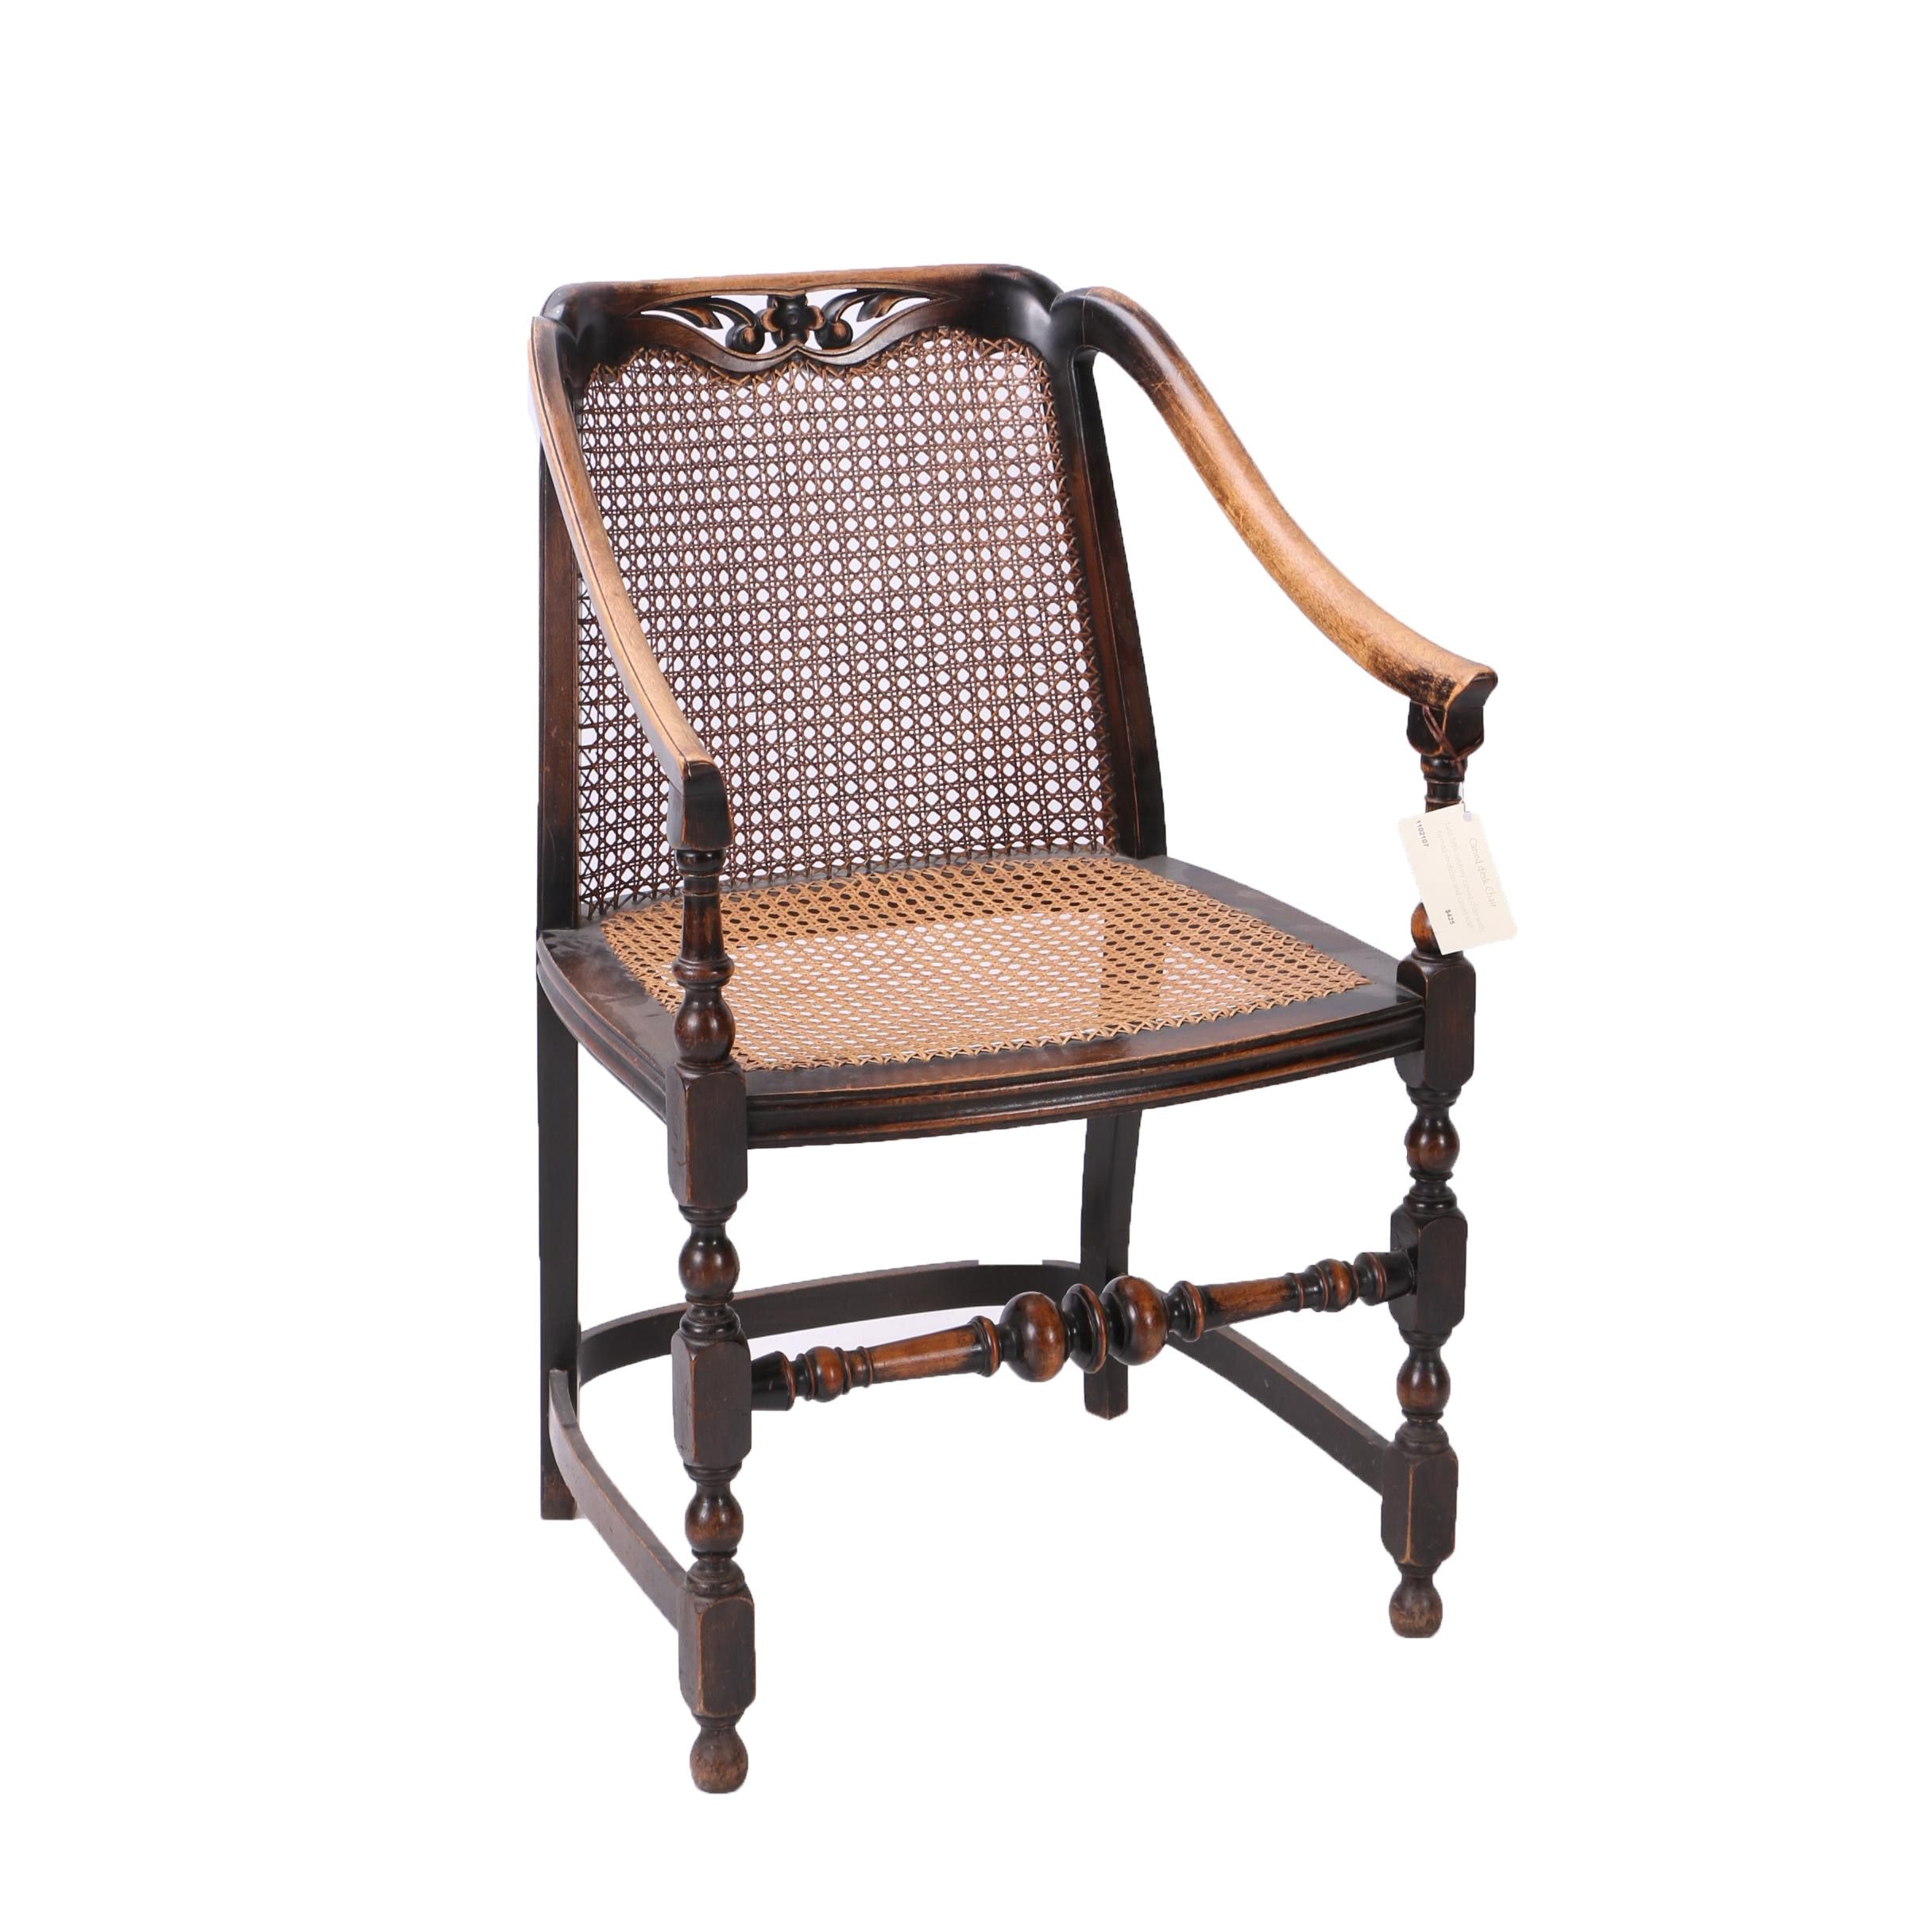 Antique English Caned Desk Chair